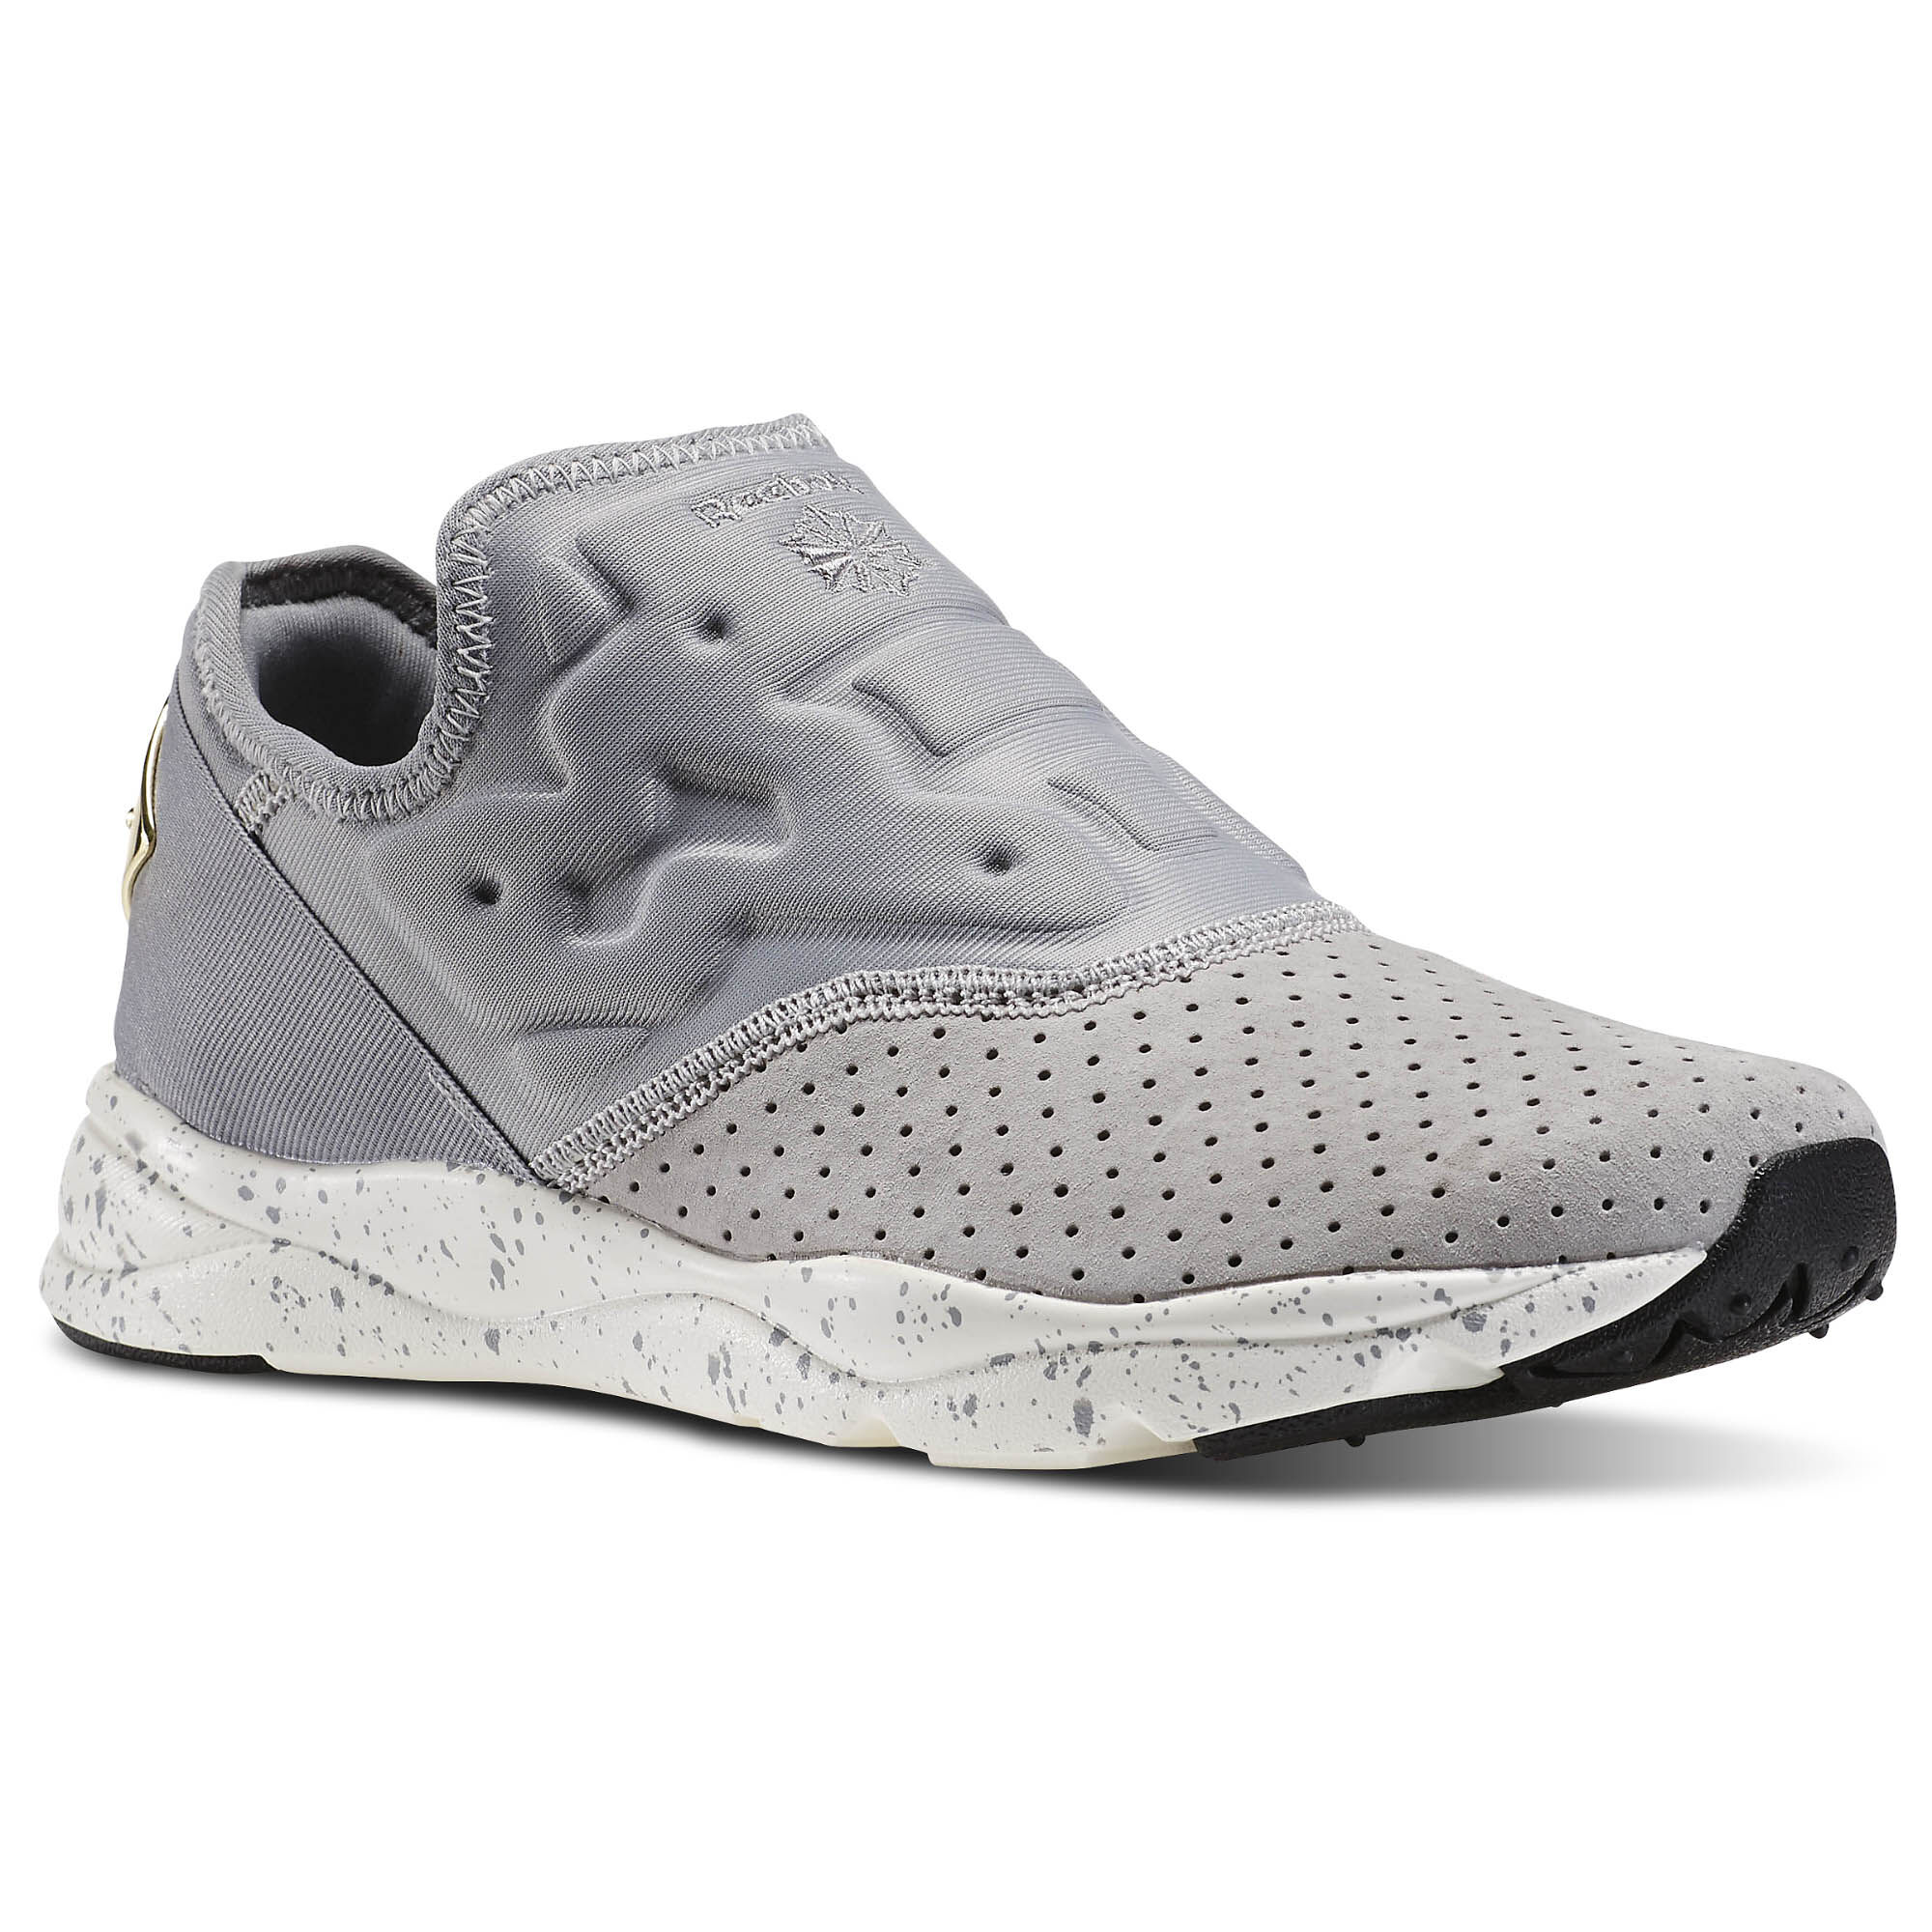 Reebok - Furylite Slip-On Lux Tin Grey/Chalk/Reebok Brass V69632